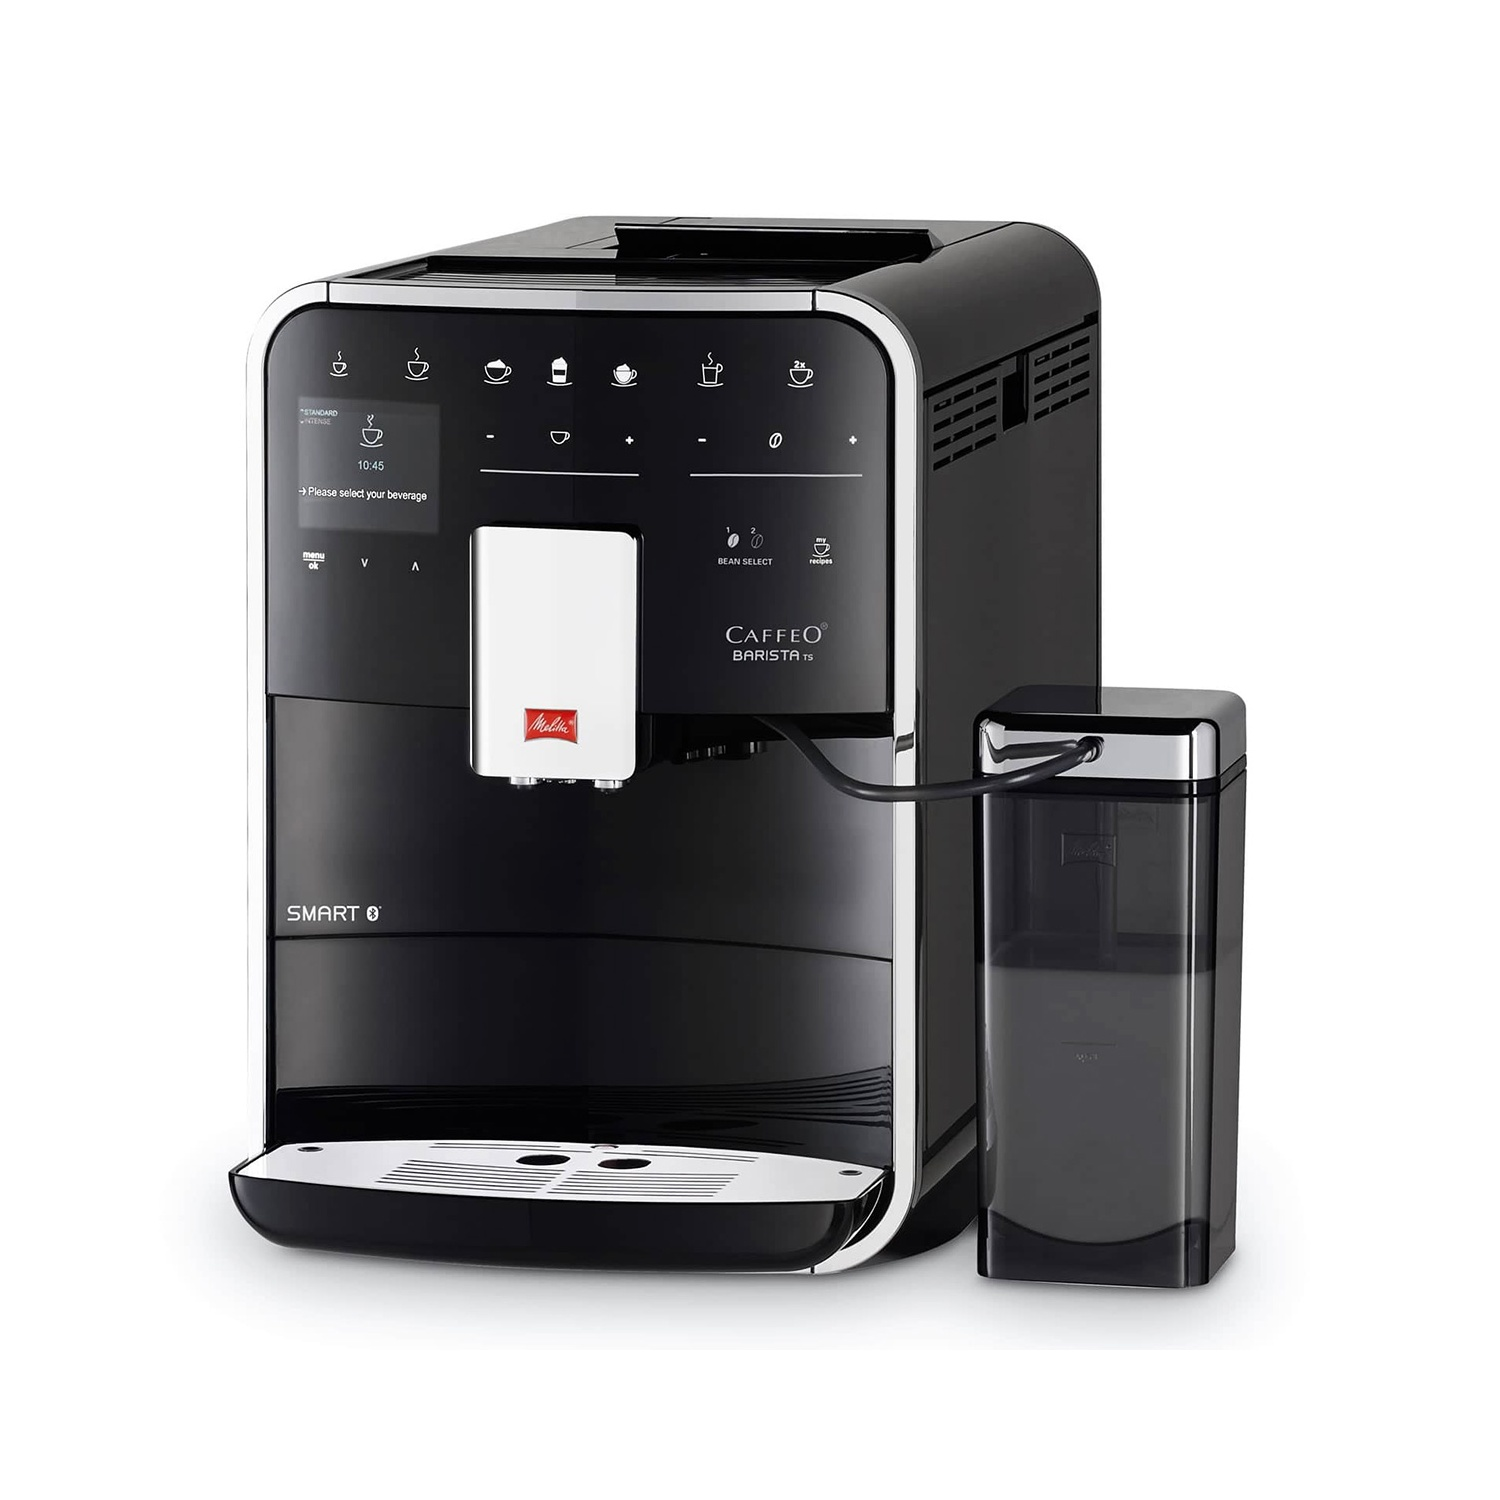 ekspres do kawy melitta f85 0 102 caffeo barista ts smart czarny gratis 3kg kawy. Black Bedroom Furniture Sets. Home Design Ideas